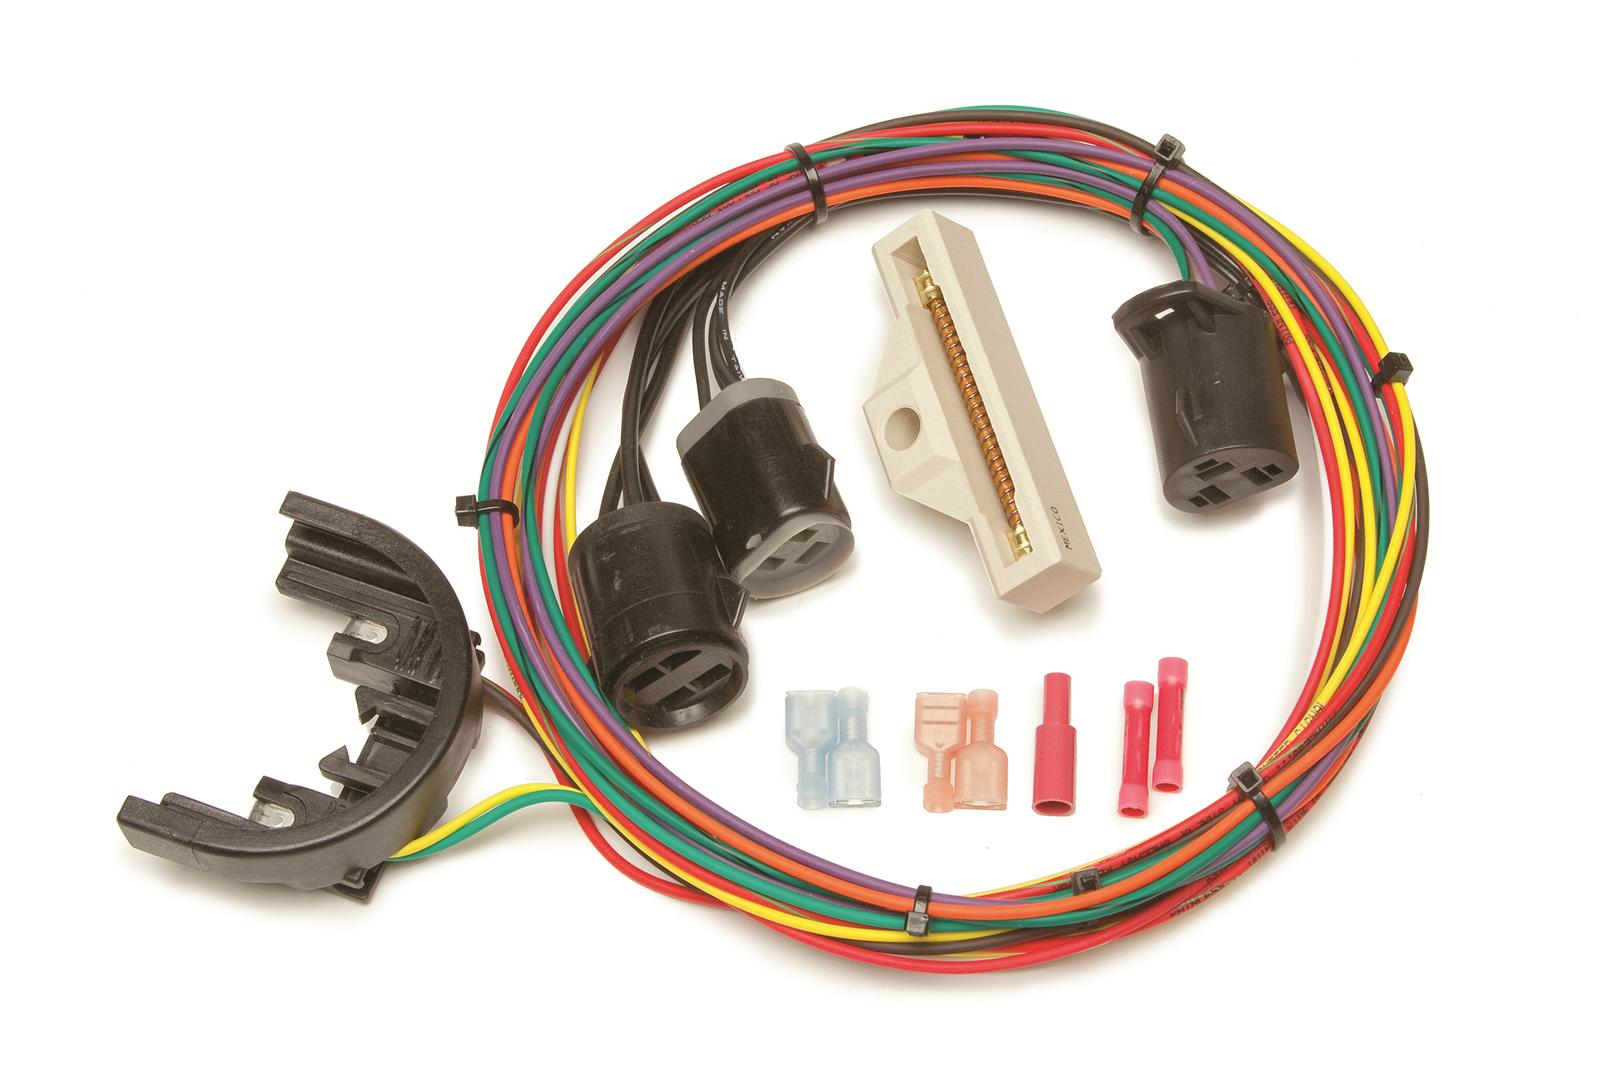 hight resolution of painless performance duraspark ii distributor wiring harnesses 30812 free shipping on orders over 99 at summit racing